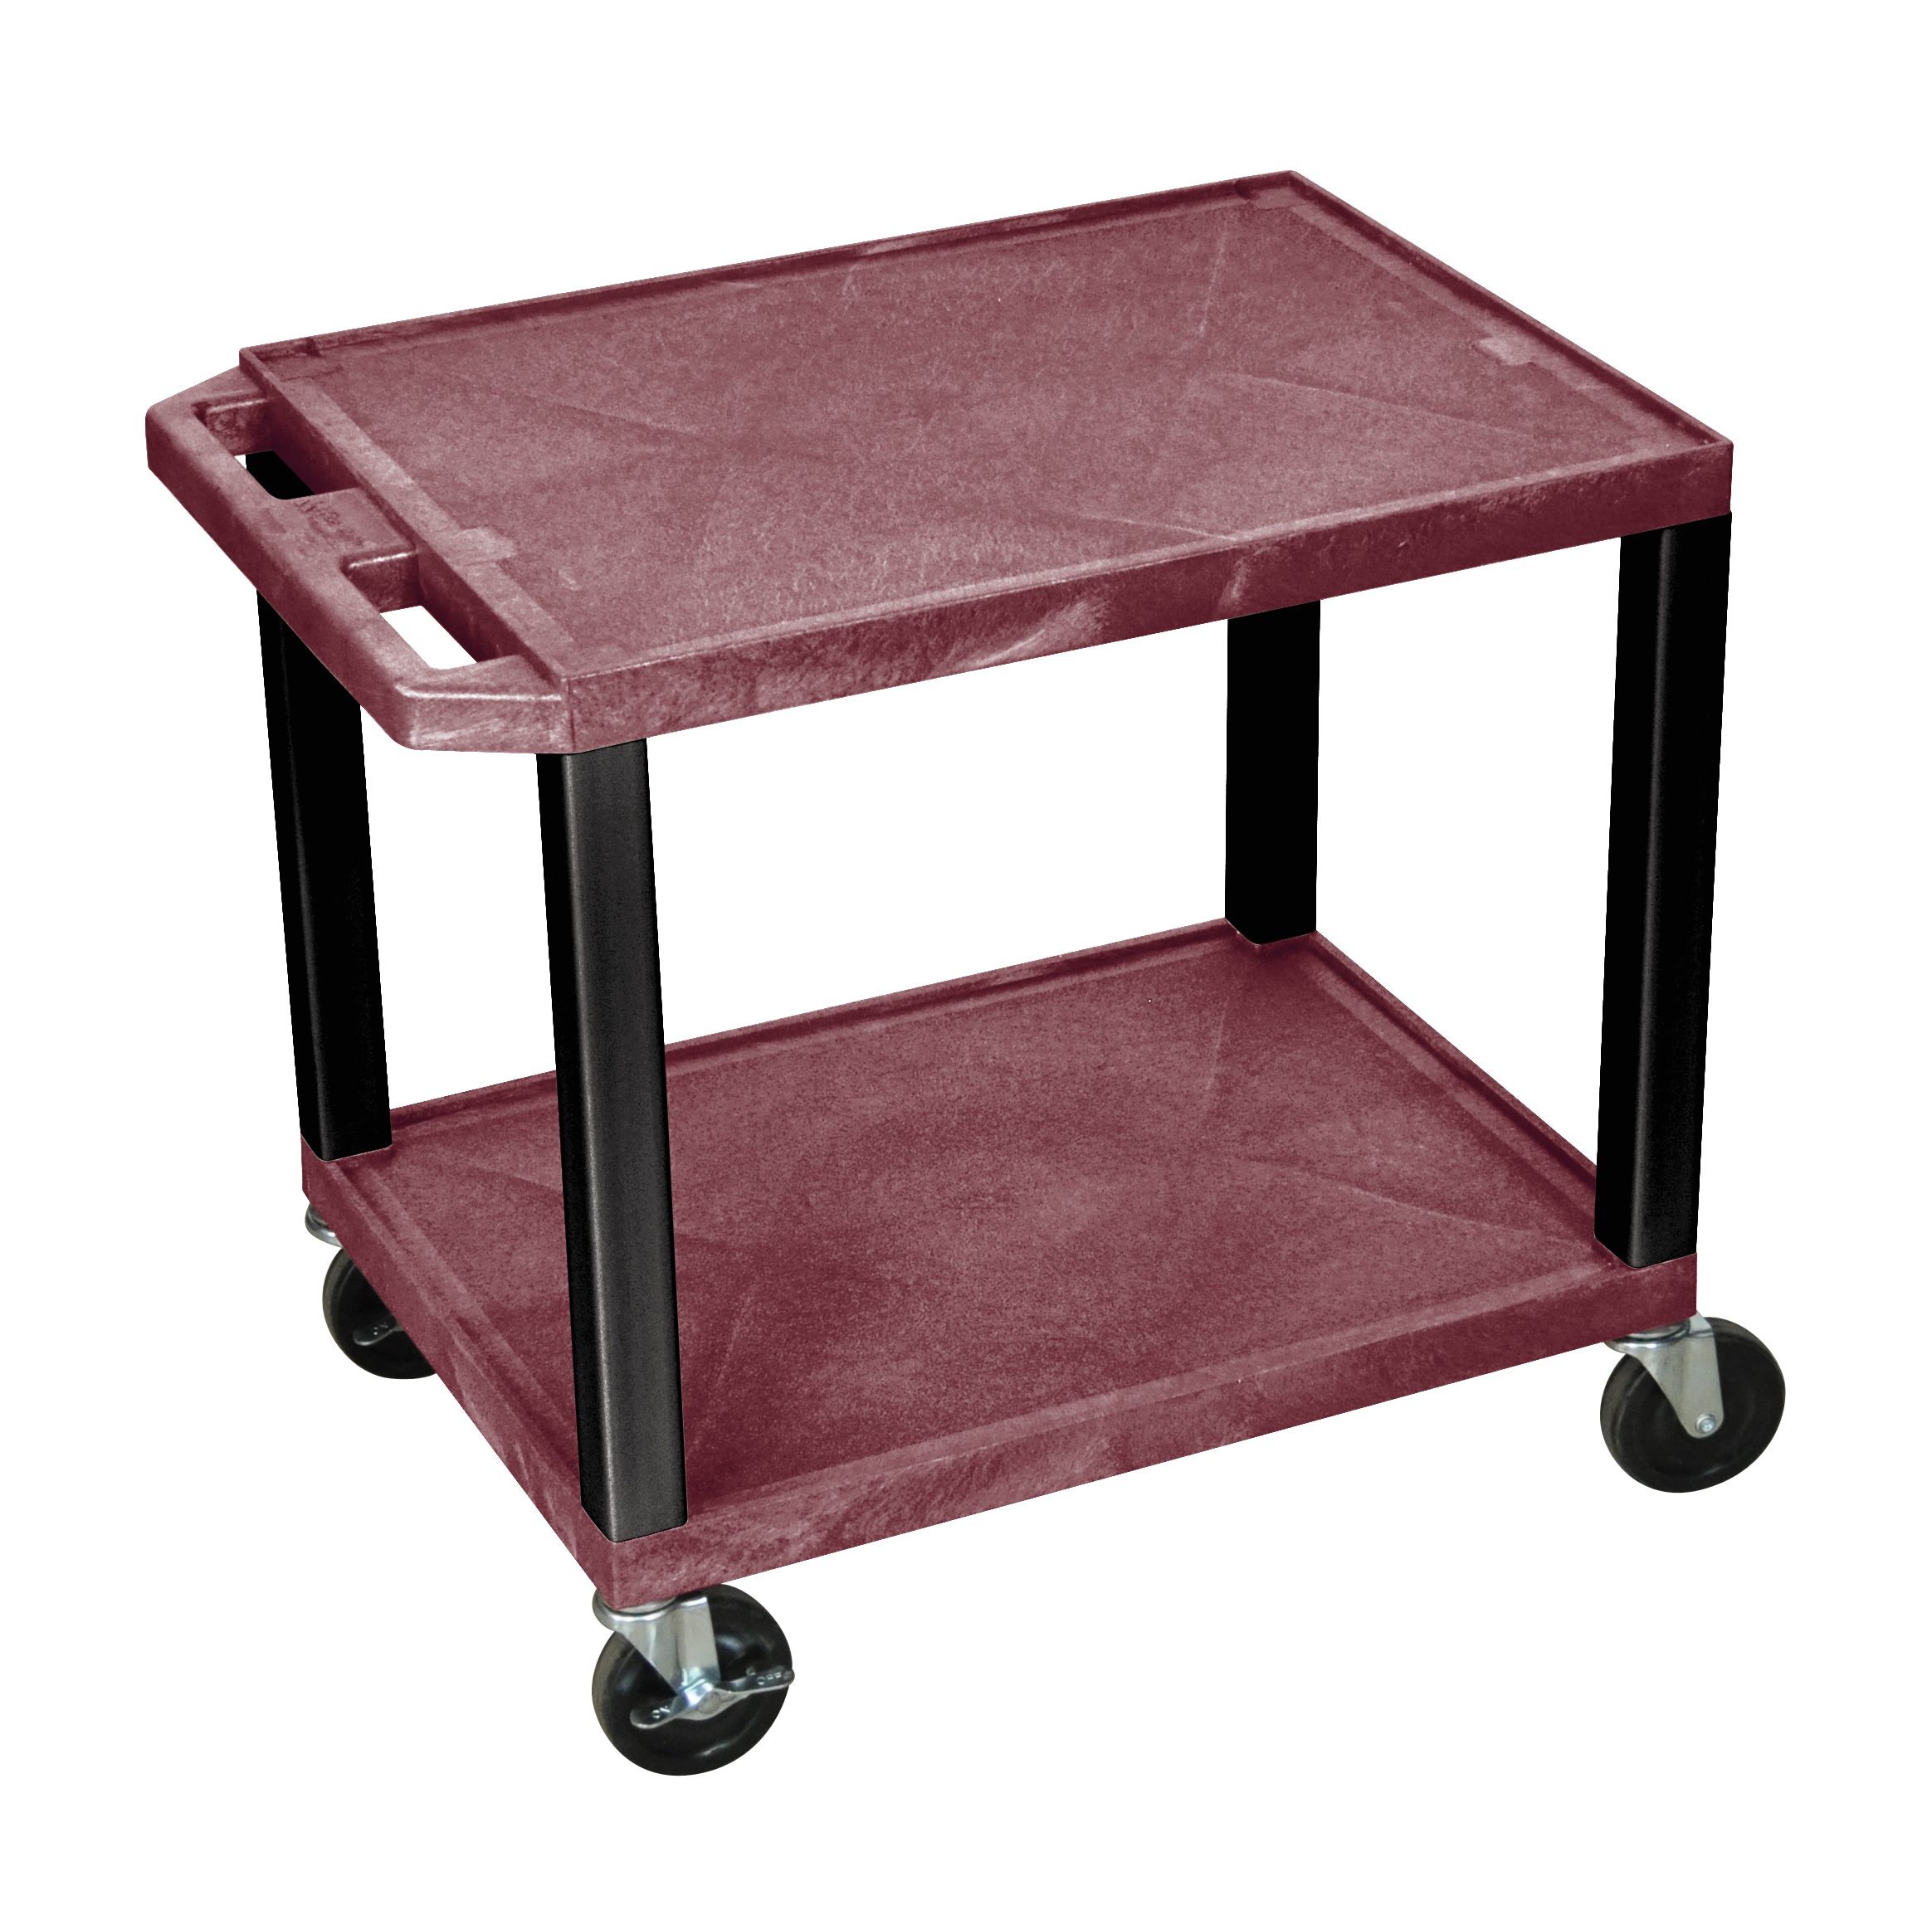 Luxor Audio Visual Equipment Storage Cart with 2 Shelves and Black Legs